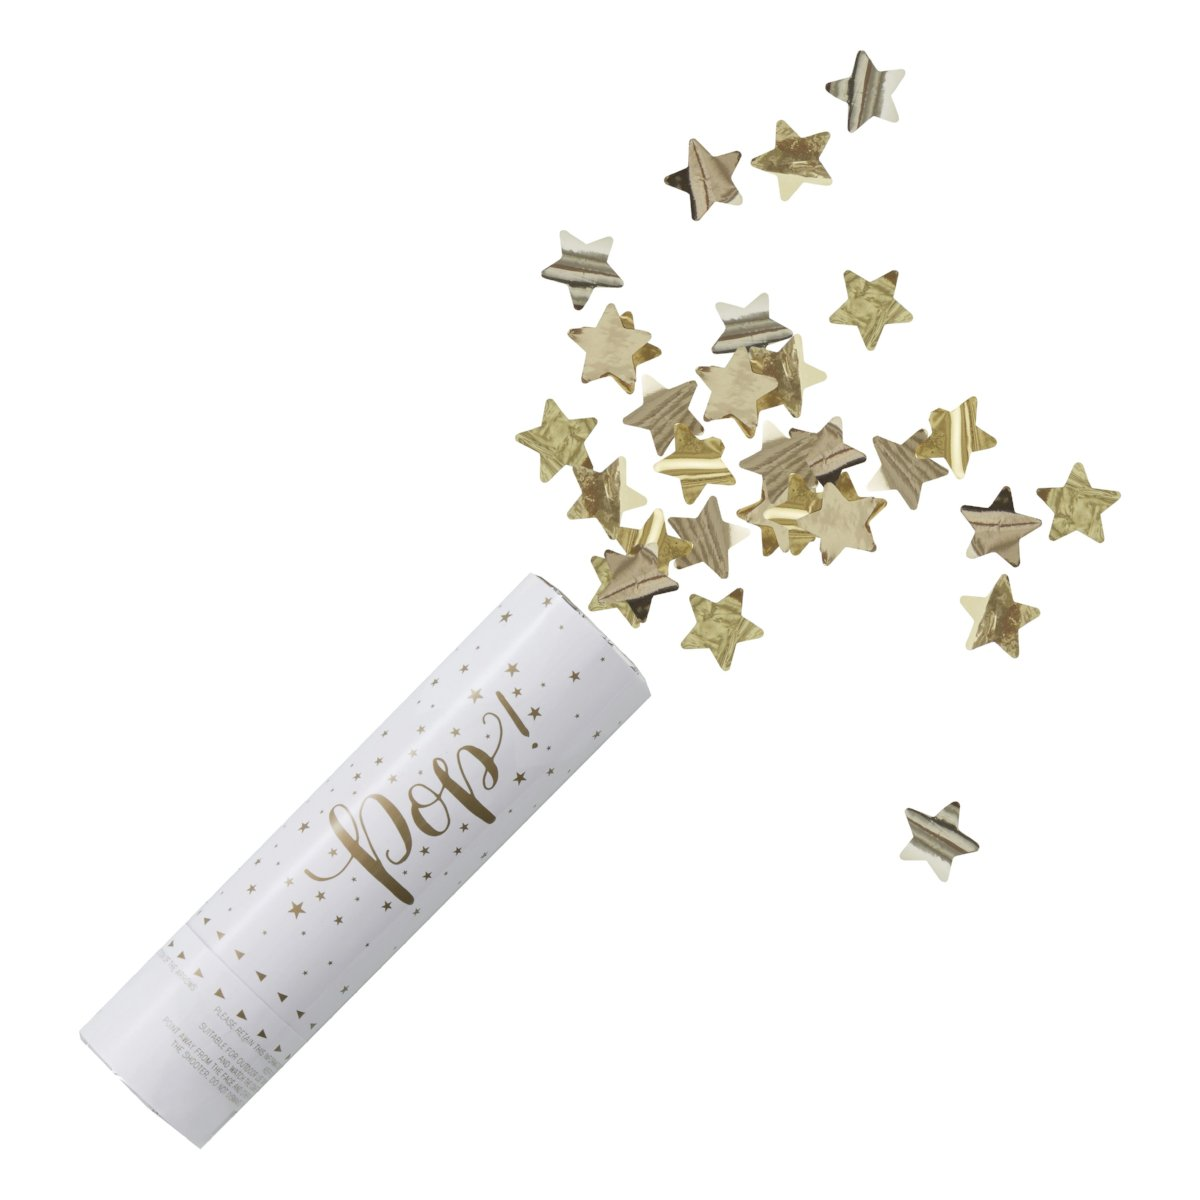 Gold Star Compressed Air Confetti Cannon Popper